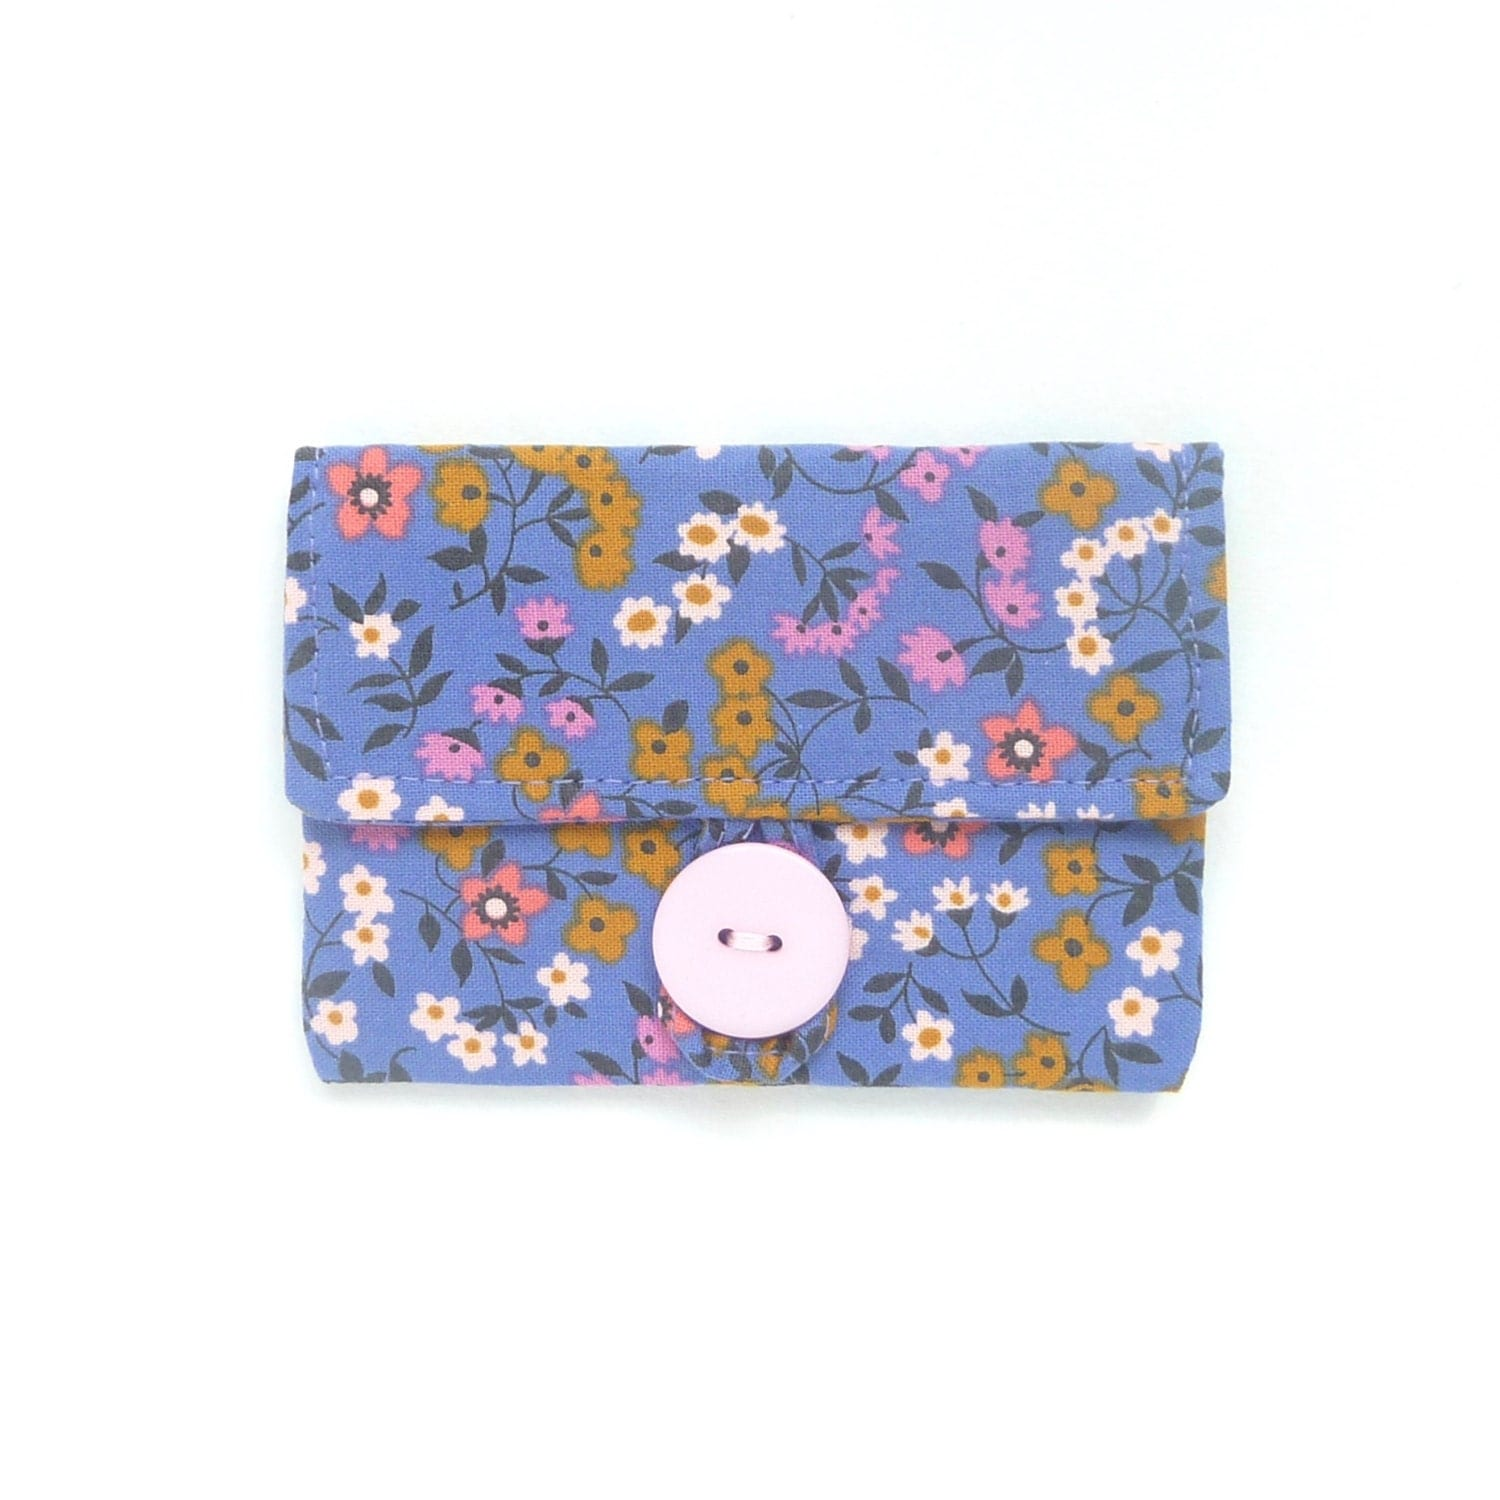 periwinkle credit card pouch. fabric women card holder. purple ...